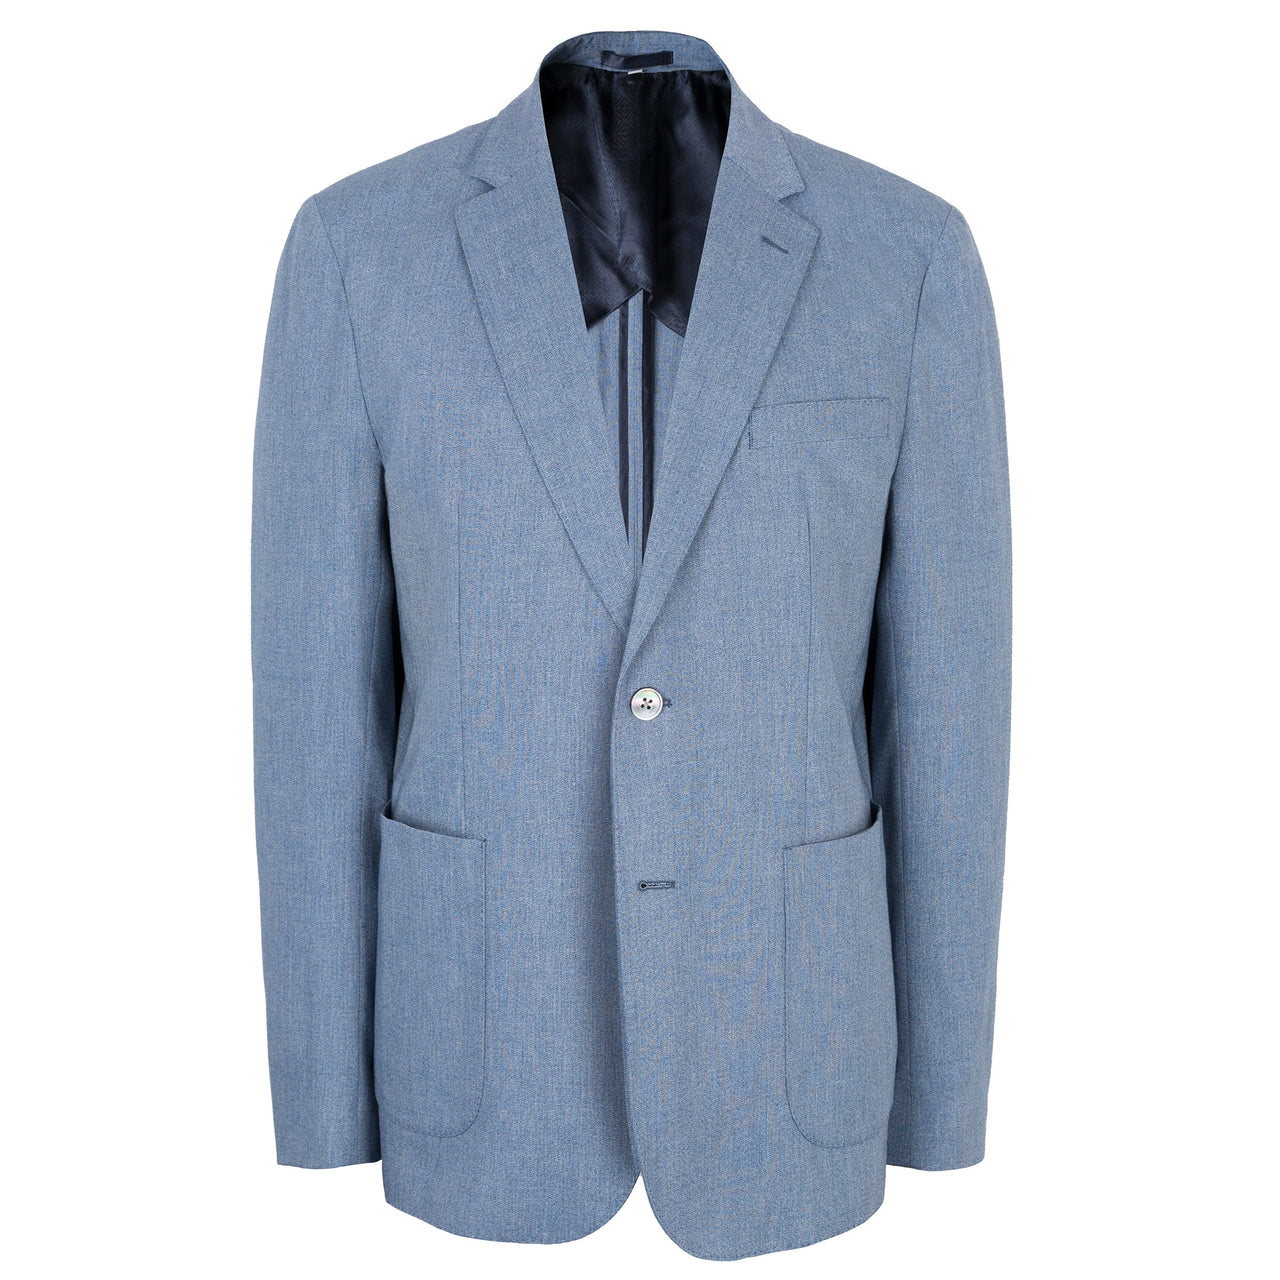 Hardy Amies Light Blue Cotton Mix Patch Pocket Slim Fit Jacket